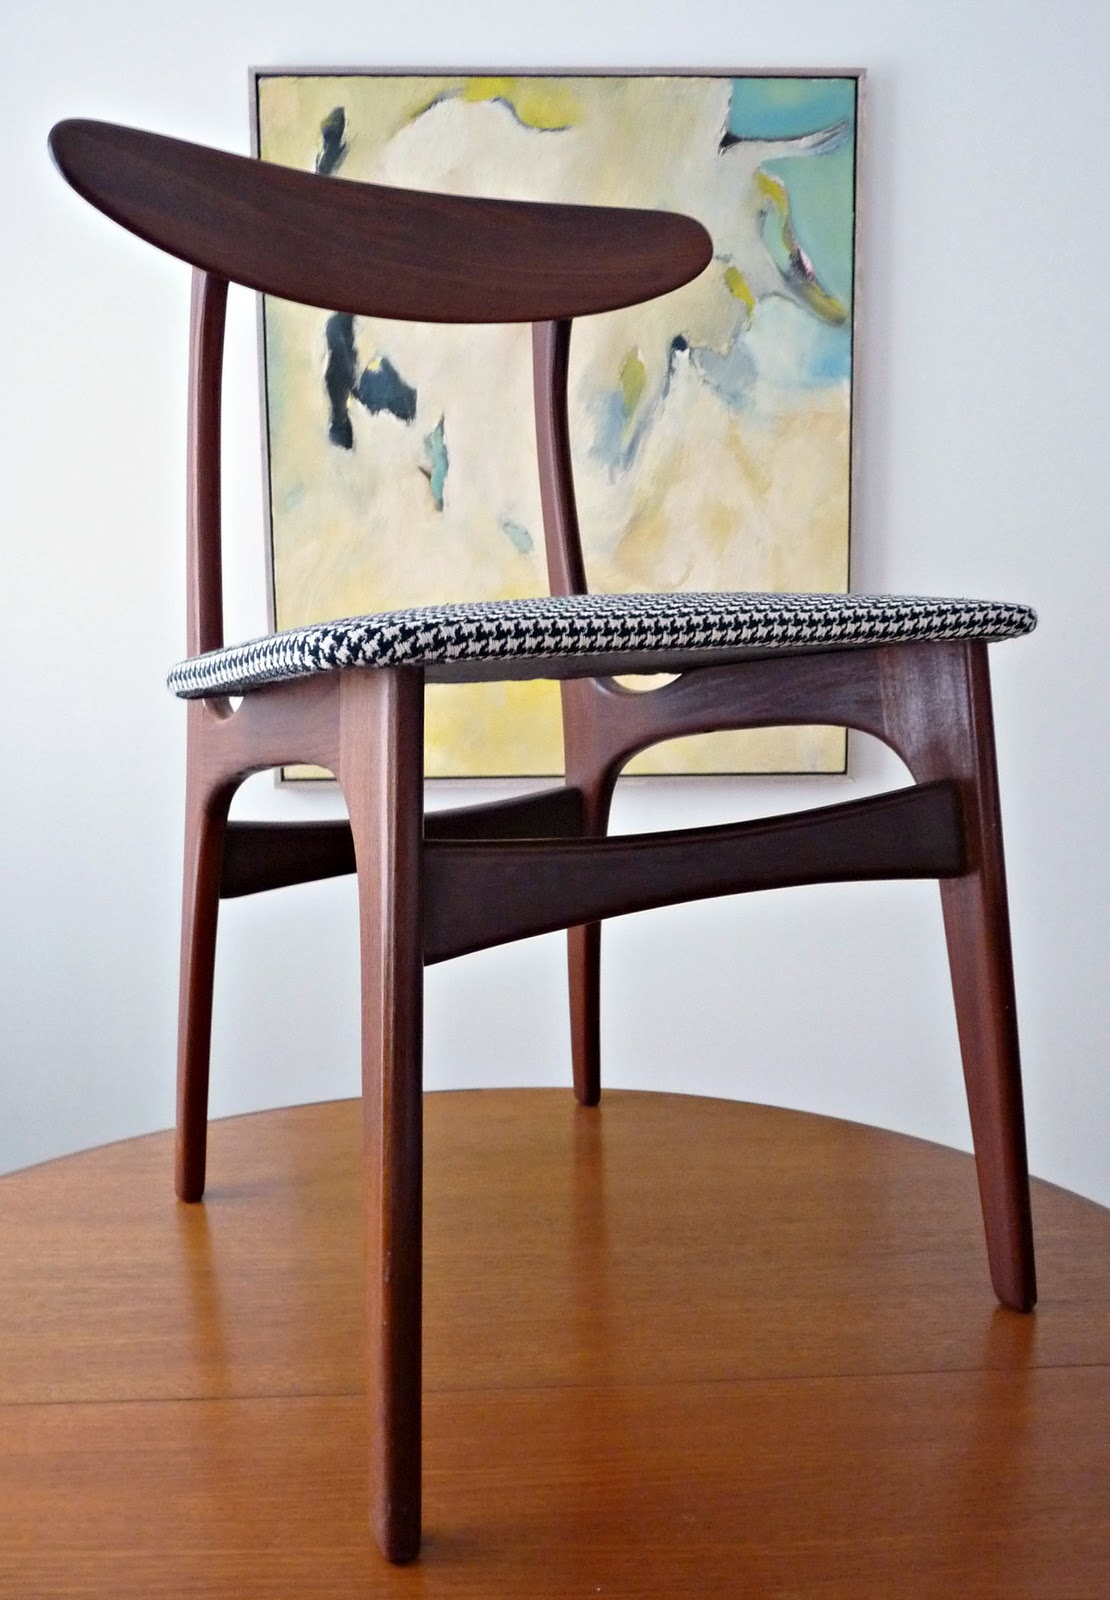 Reupholster Dining Chairs Rv Furniture How To Diy Houndstooth Upholstered A Room Chair Seat Tips And Tricks For Upholstery